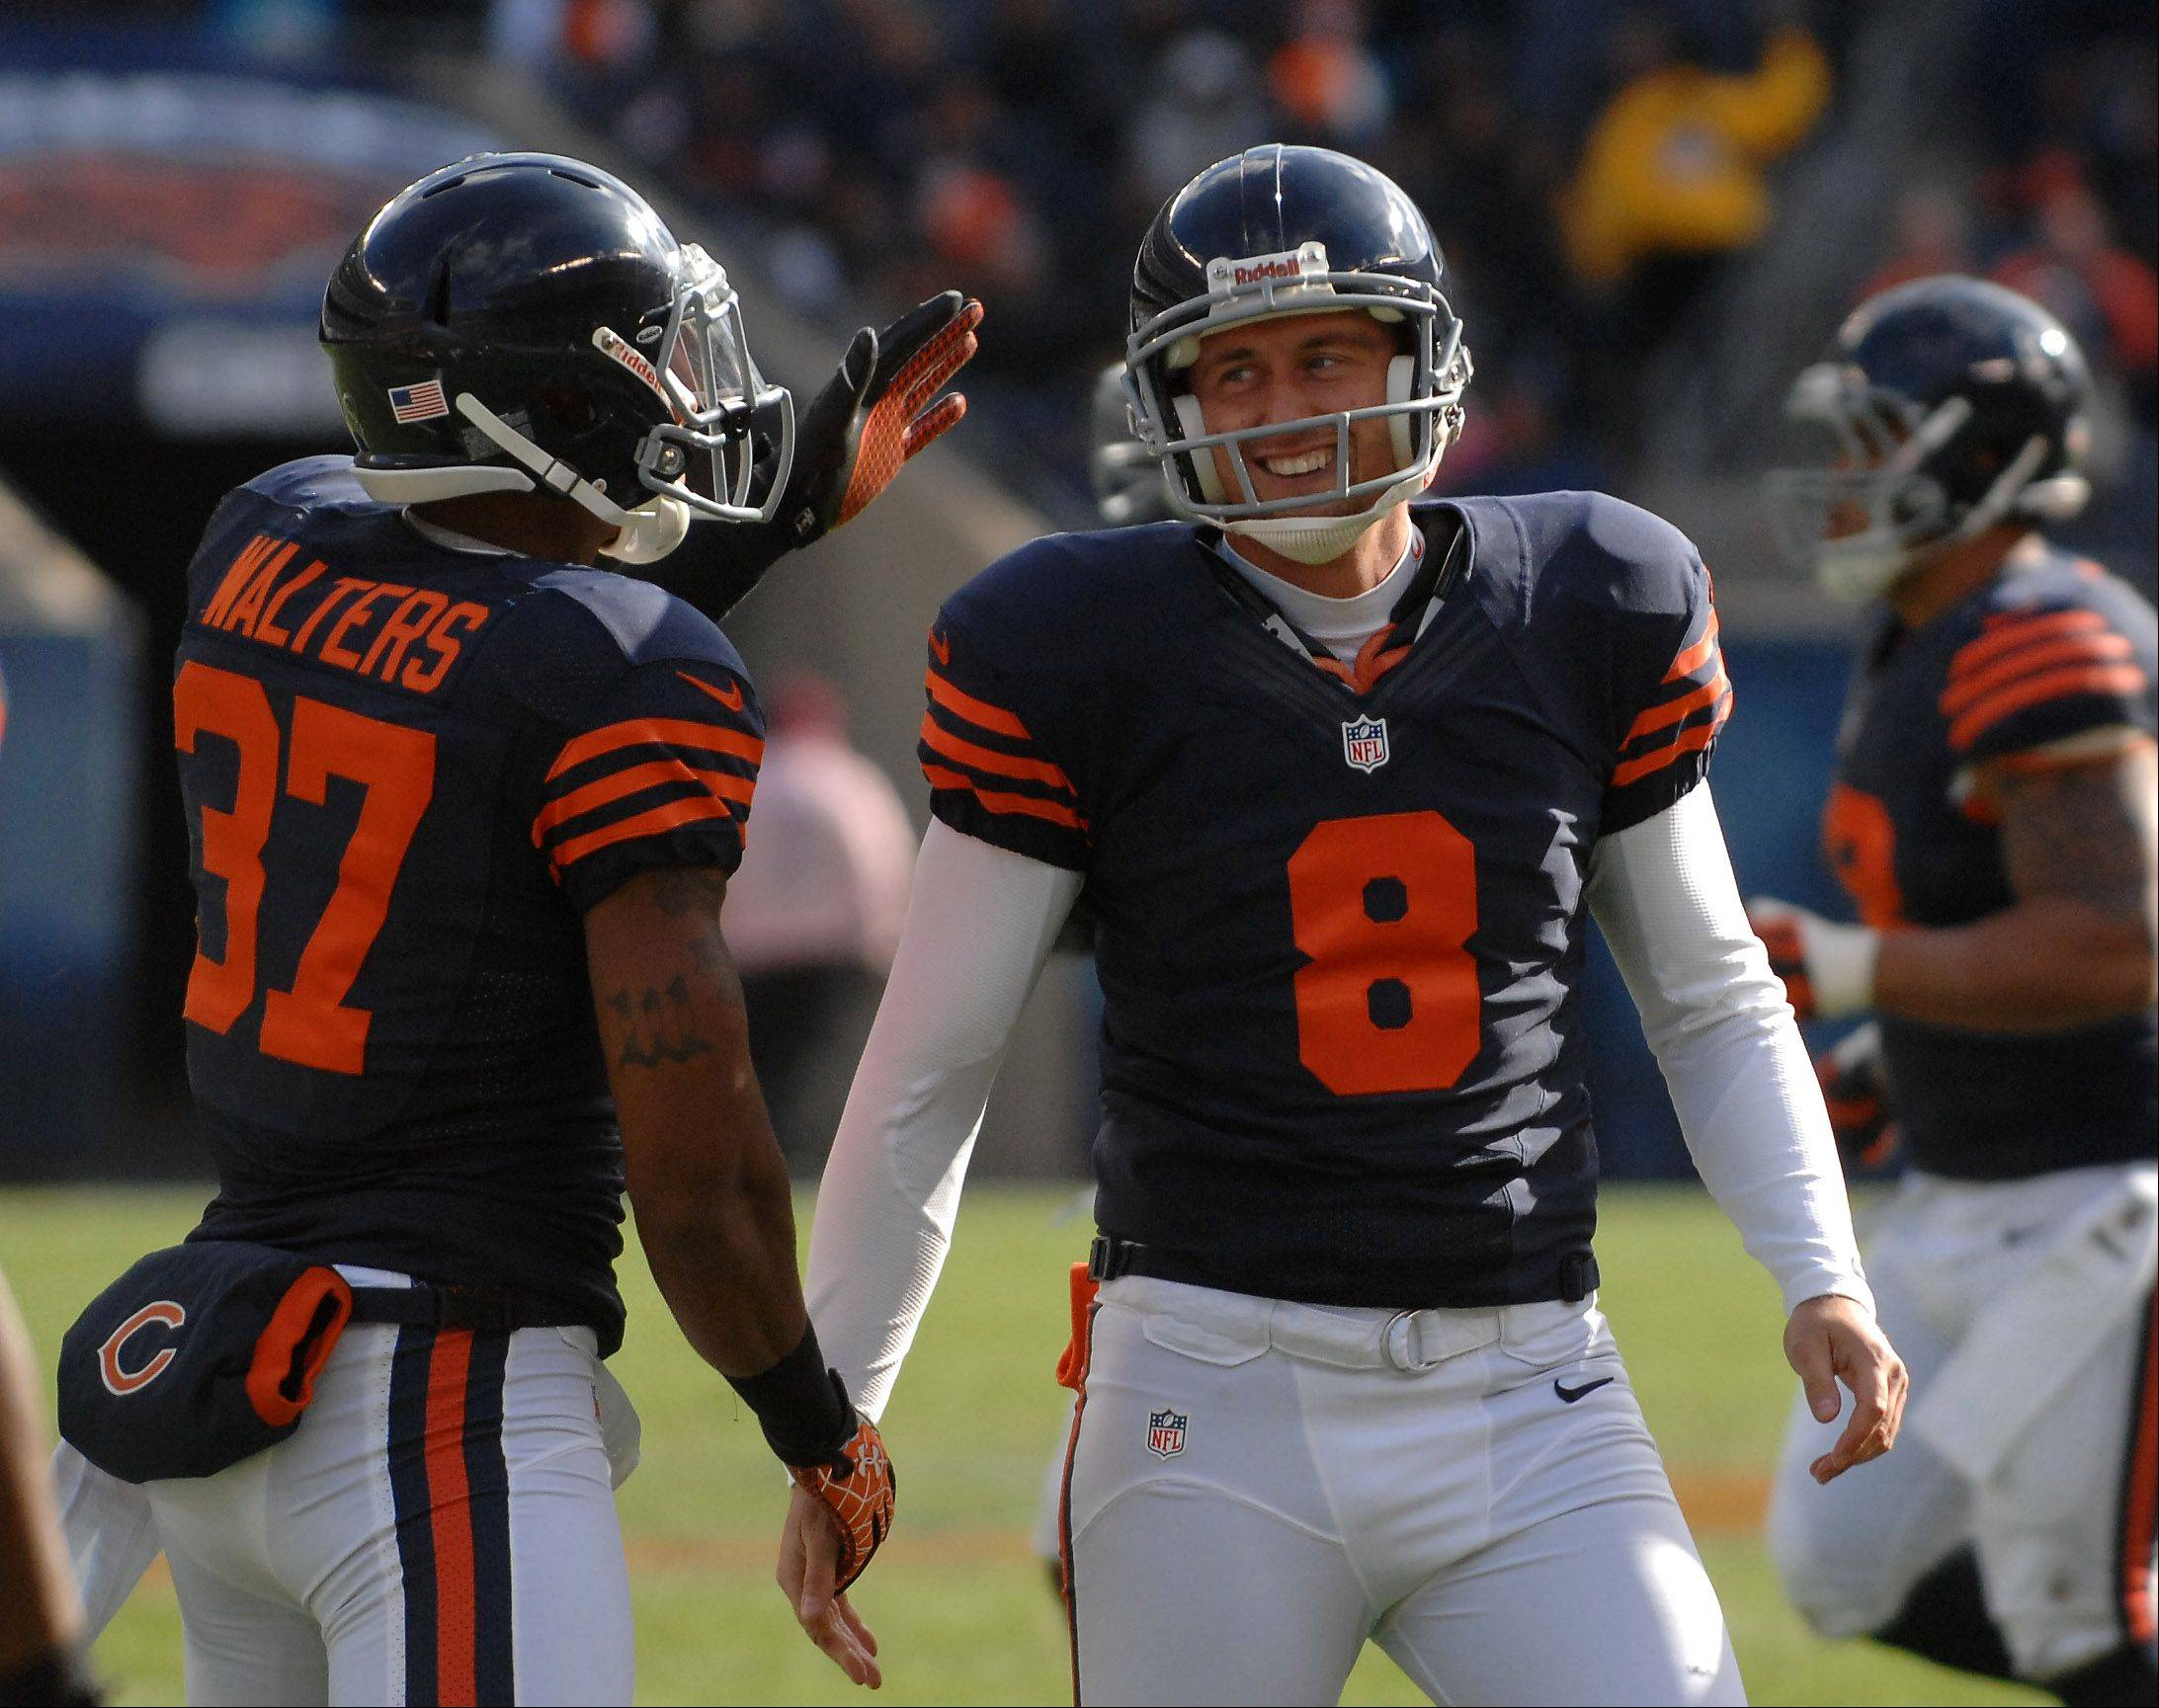 Chicago Bears punter Adam Podlesh (8) and Chicago Bears Anthony Walters (37) are pleased after pinning the Panthers inside the 10 on a punt during Sunday's game at Soldier Field in Chicago.